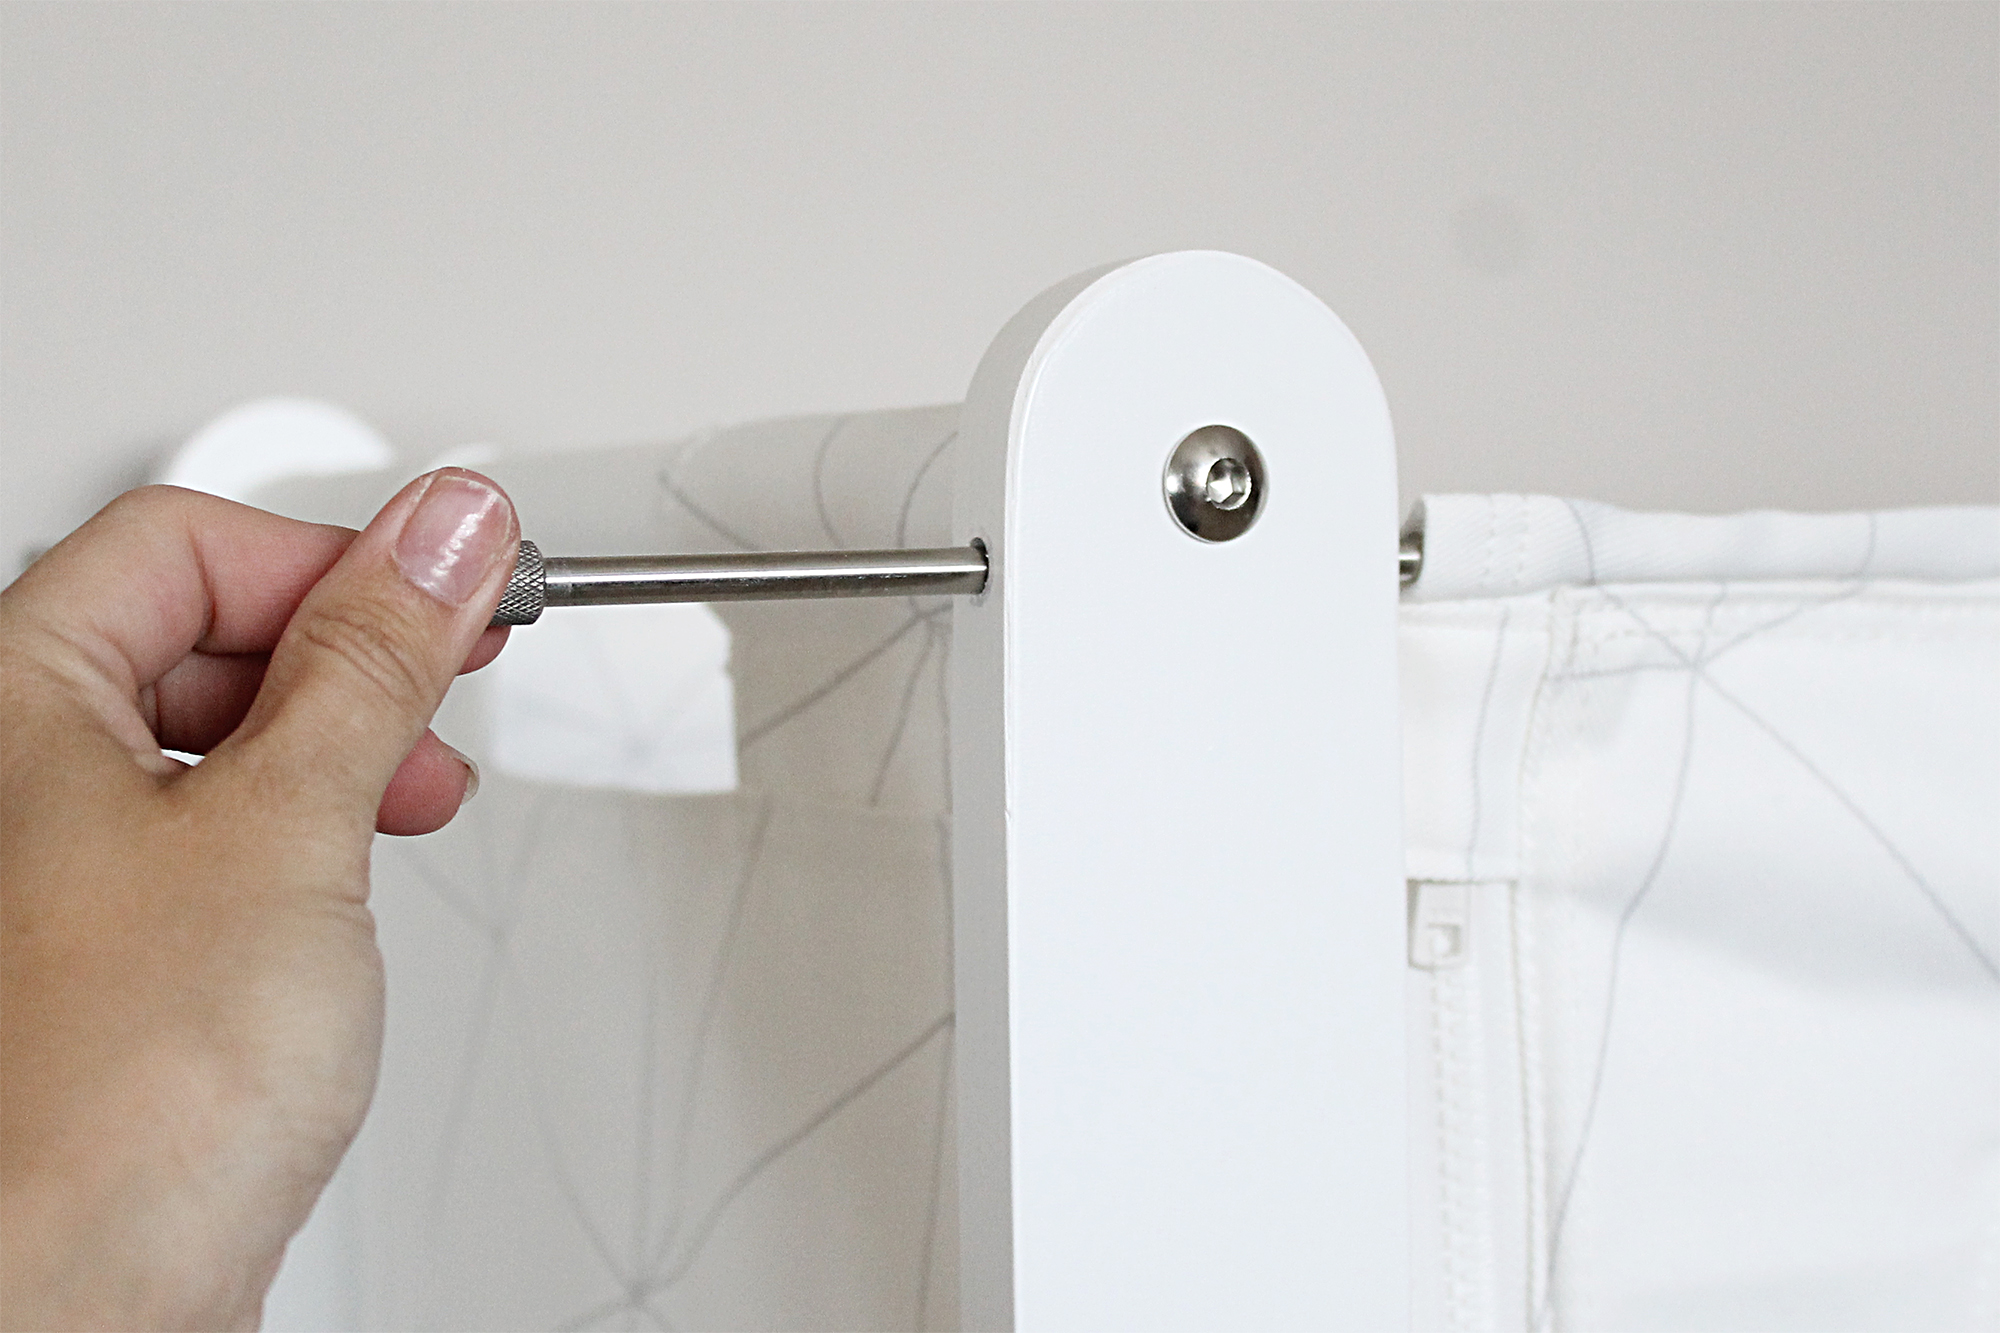 A hand pulling out the pin holding the side of a SnuzPod